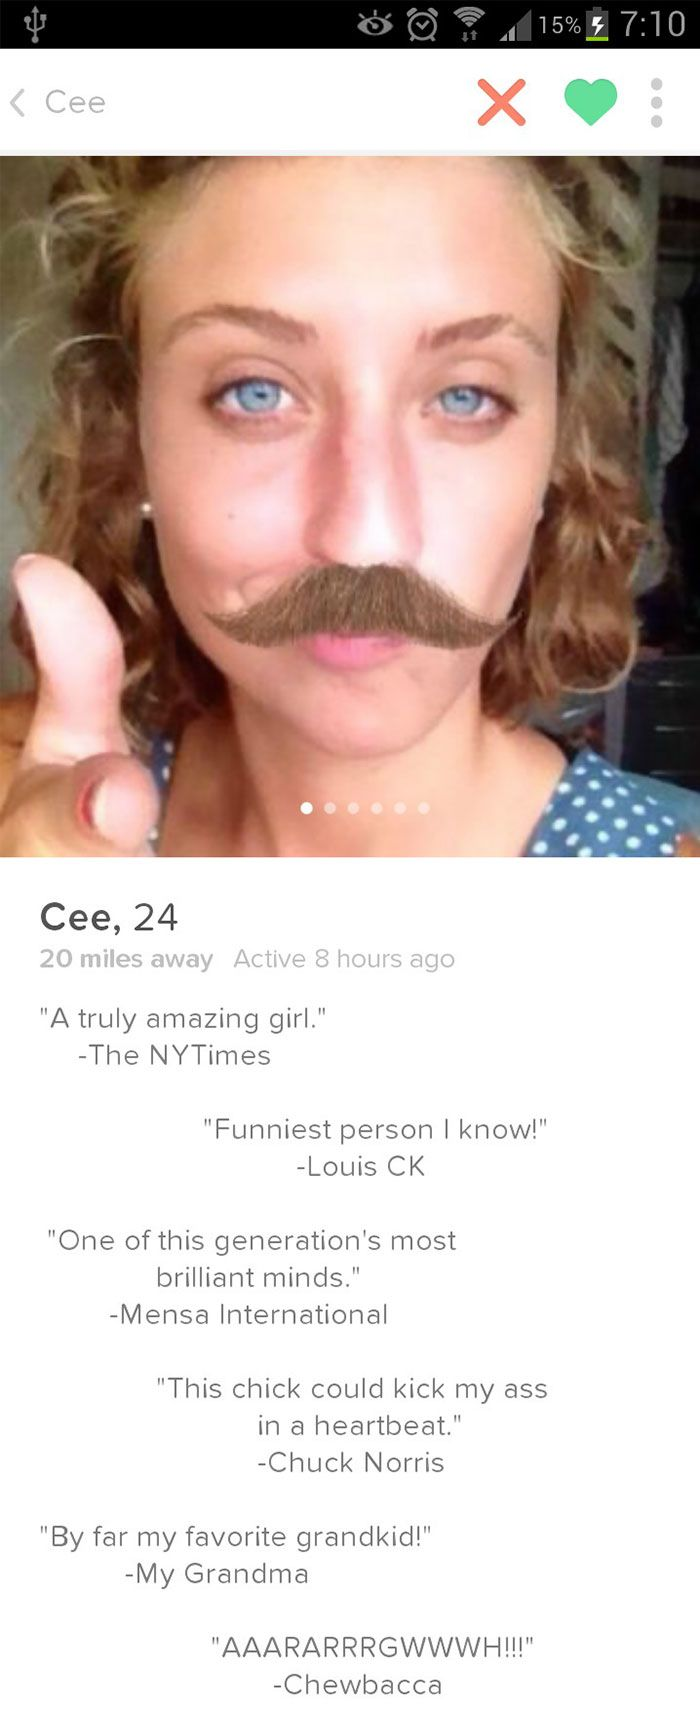 10 10 Would Date Her Tinder Humor Funny Tinder Profiles Funny Dating Memes